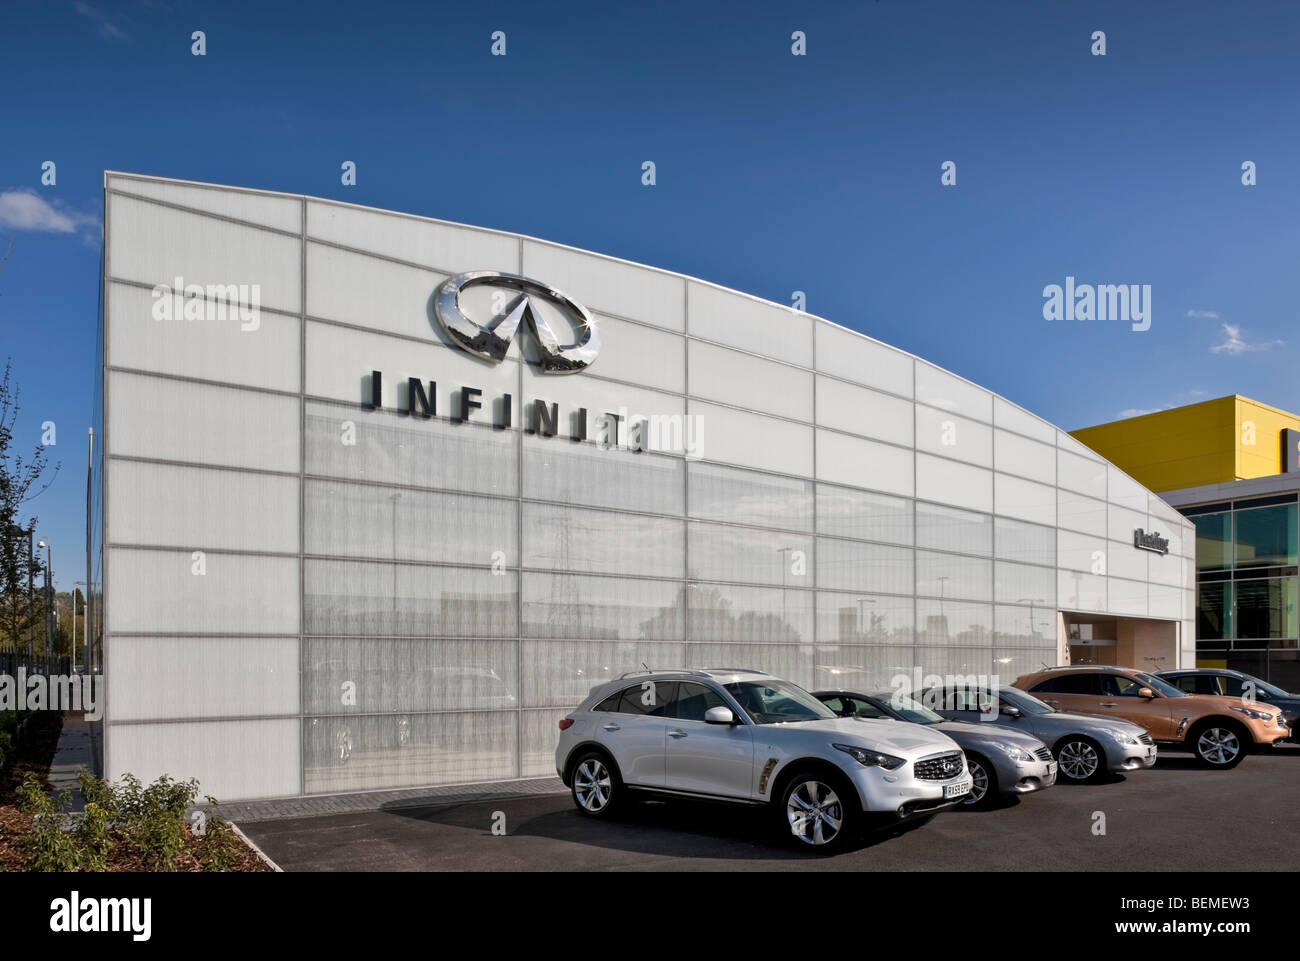 Infiniti Dealer Reading >> Infiniti Car Showroom In Reading Stock Photo 26266271 Alamy